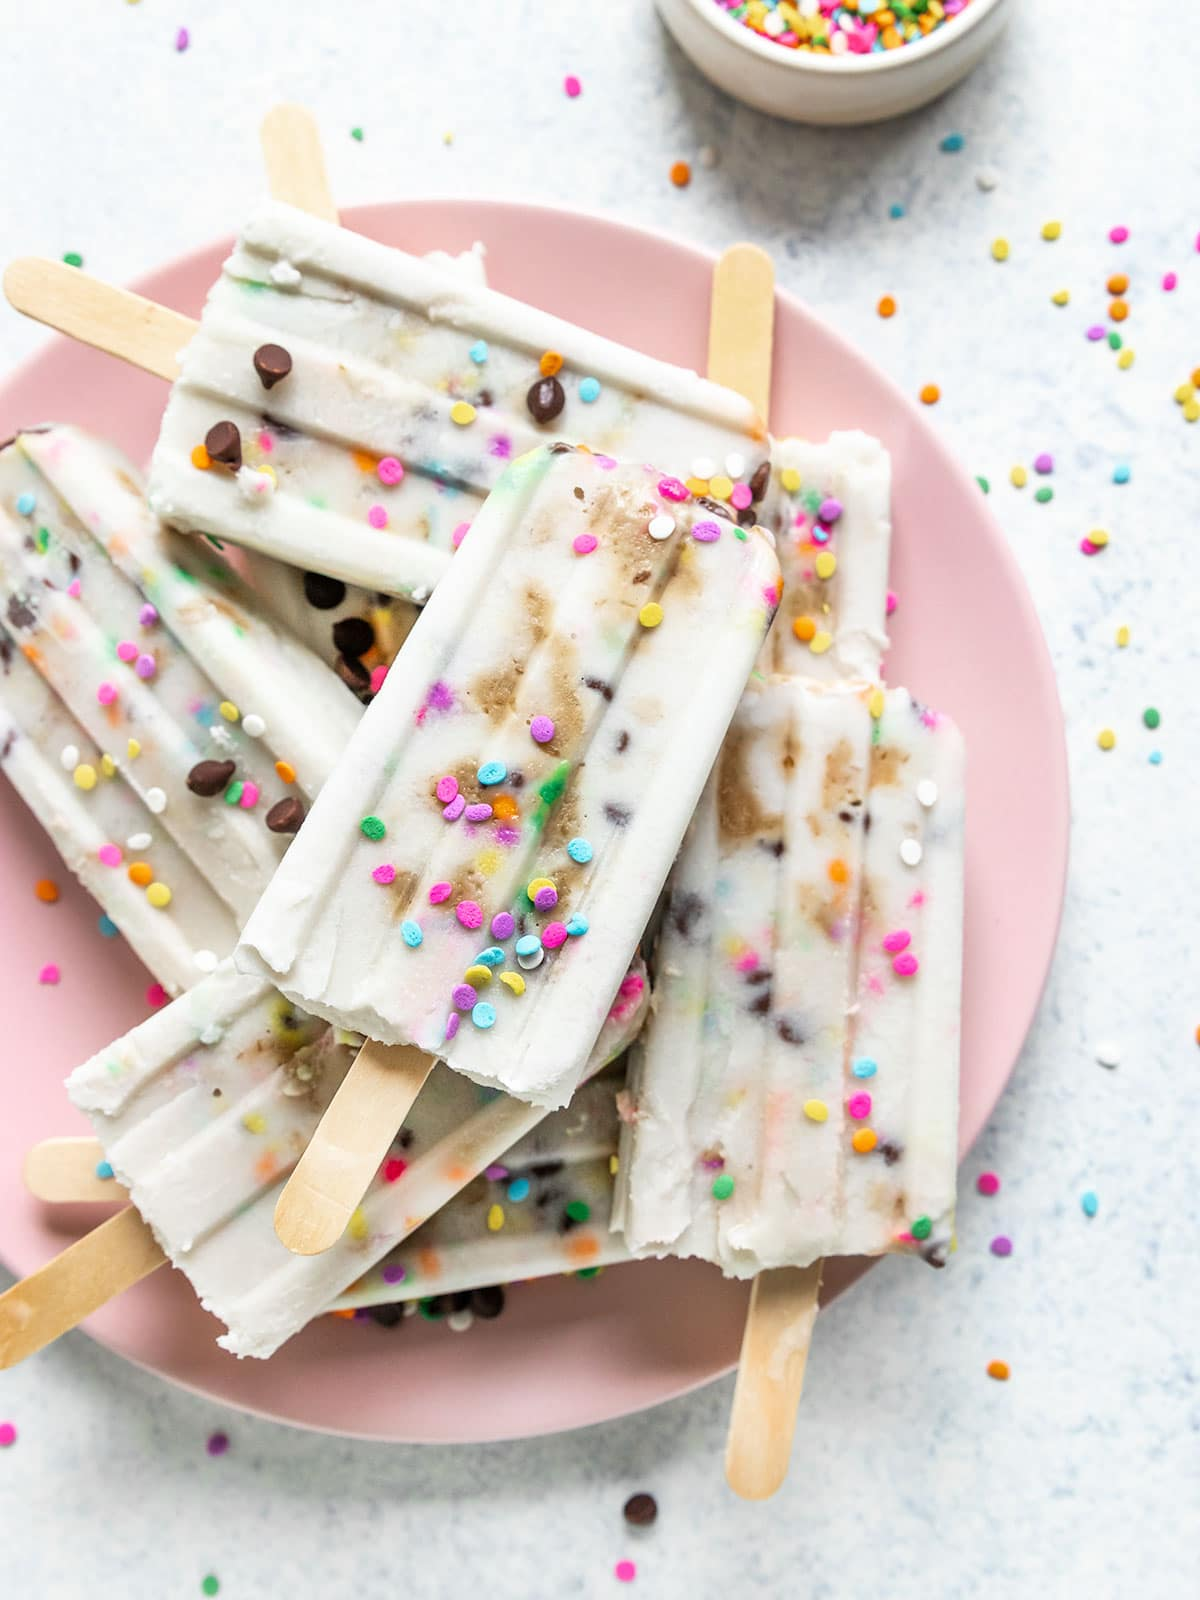 popsicles filled with cookie dough, chocolate chips, and rainbow sprinkles